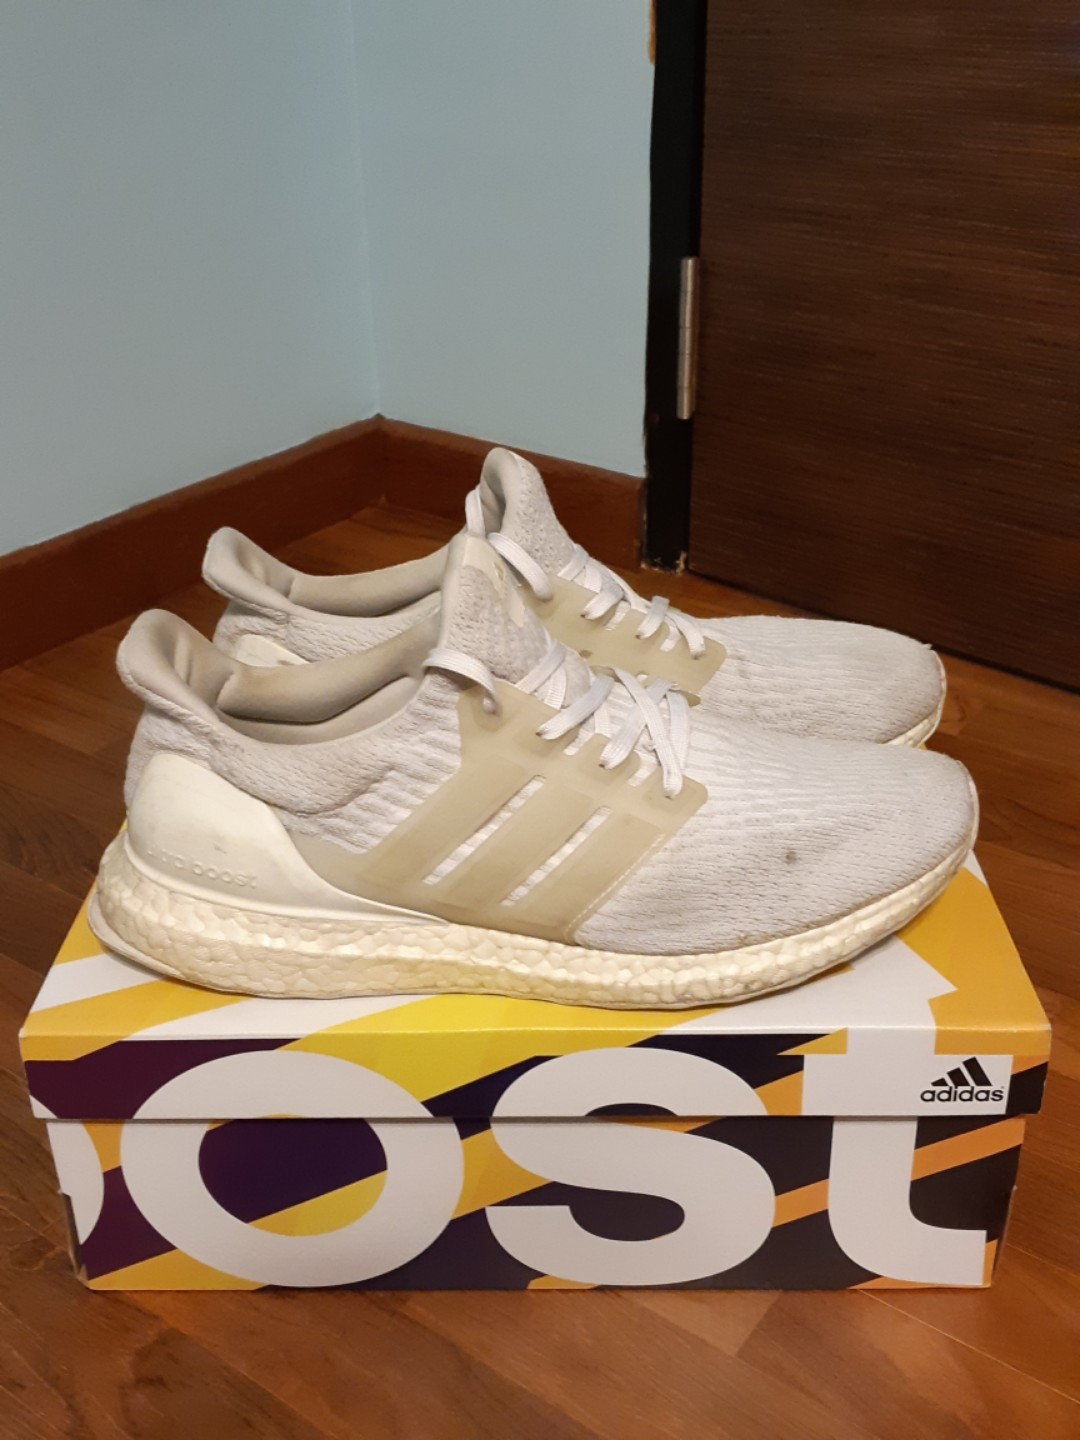 22d04225a Adidas Ultra Boost 3.0 Triple White US9.5